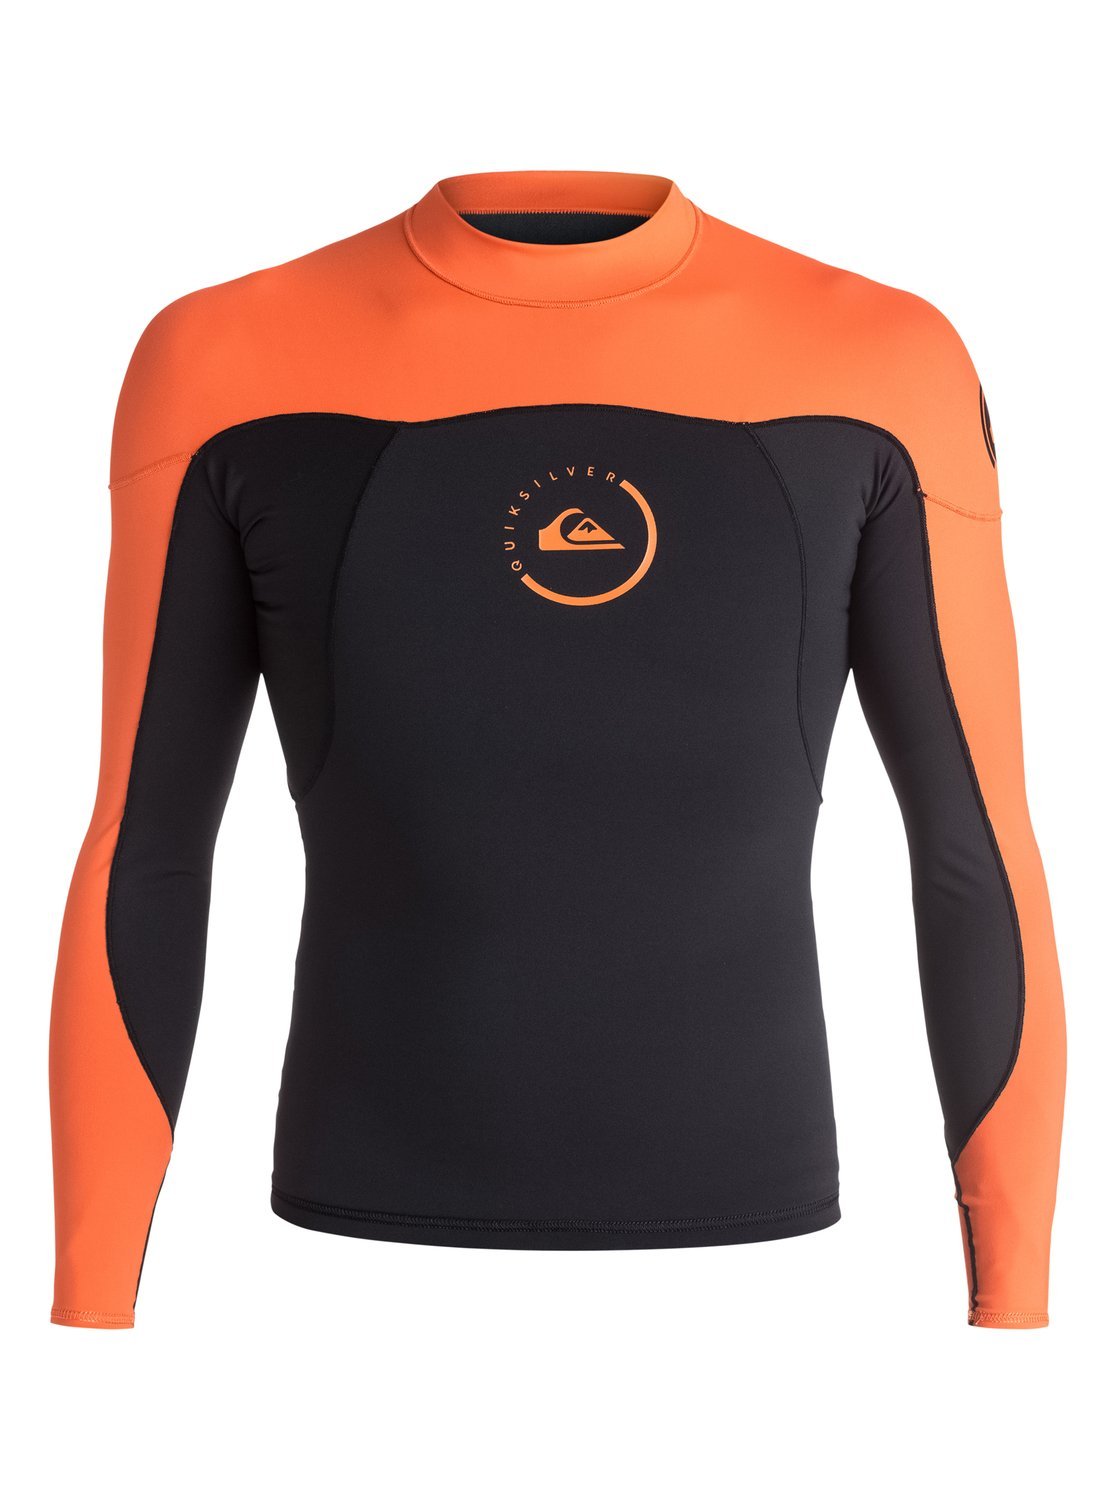 Syncro 1mm - Long Sleeve Neo Top